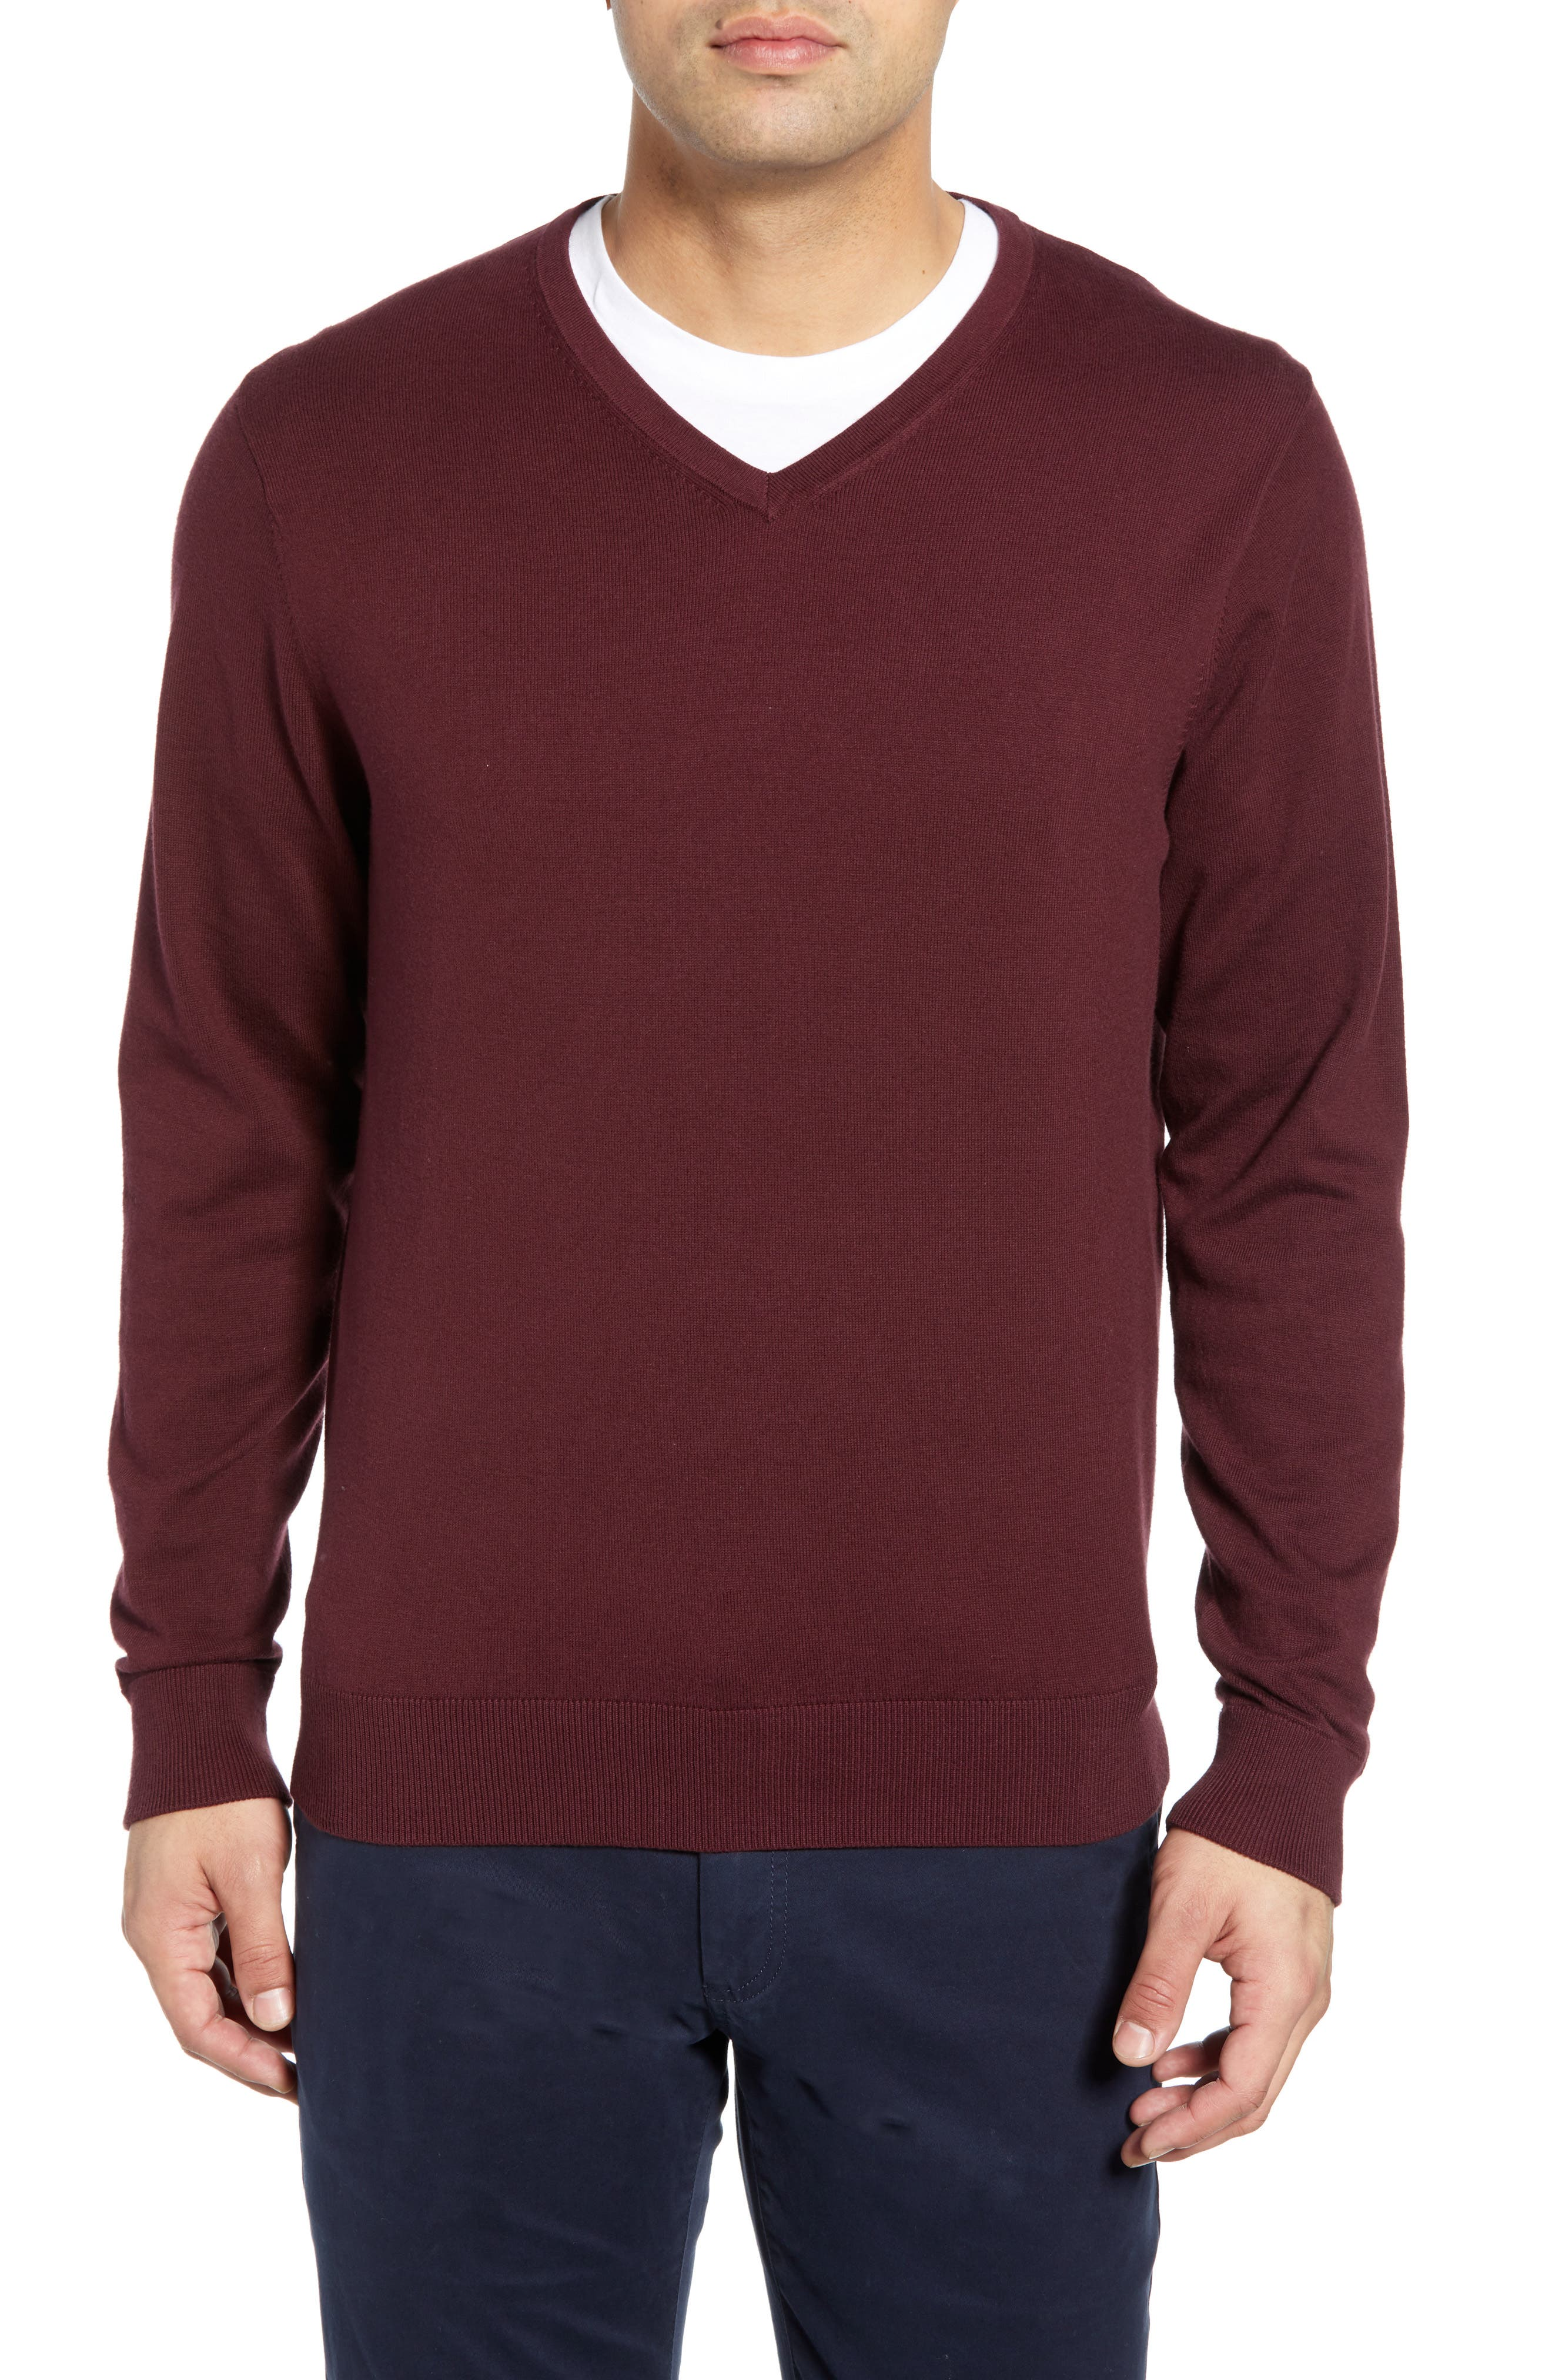 CUTTER & BUCK Lakemont V-Neck Sweater, Main, color, BORDEAUX